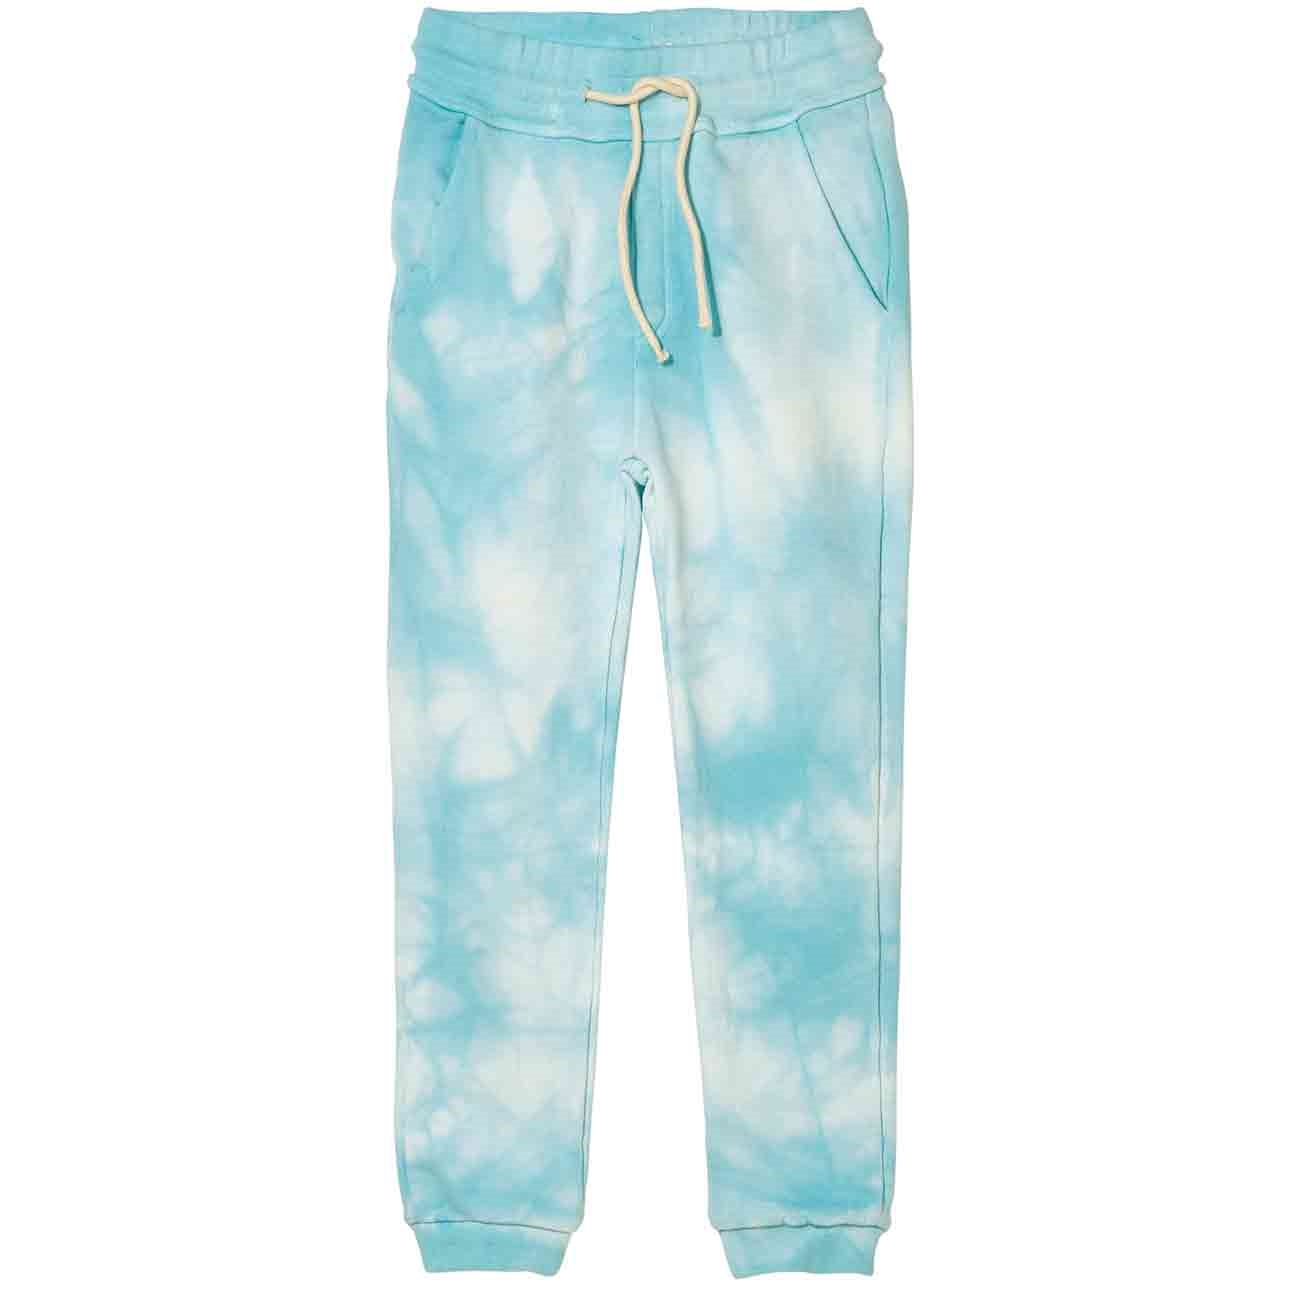 finger-in-the-nose-sprint-cloud-blue-tie-and-dye-straight-pants-bukser-jogging-212-0807-261-1